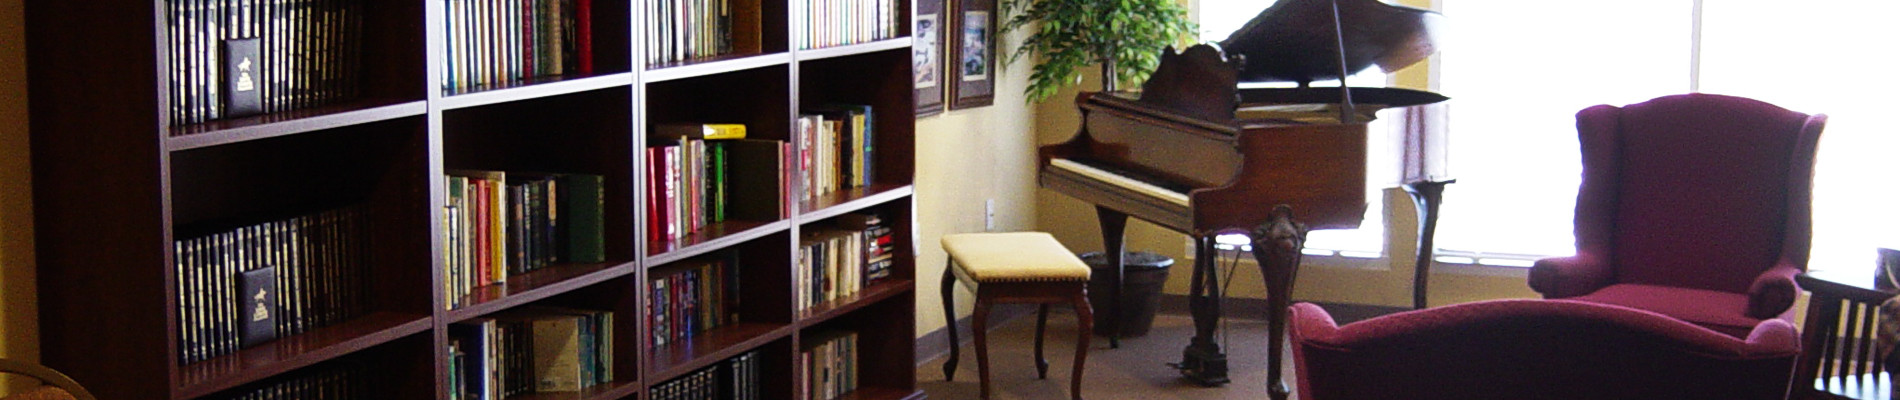 Library at Wildomar Senior Leisure Community in Temecula CA